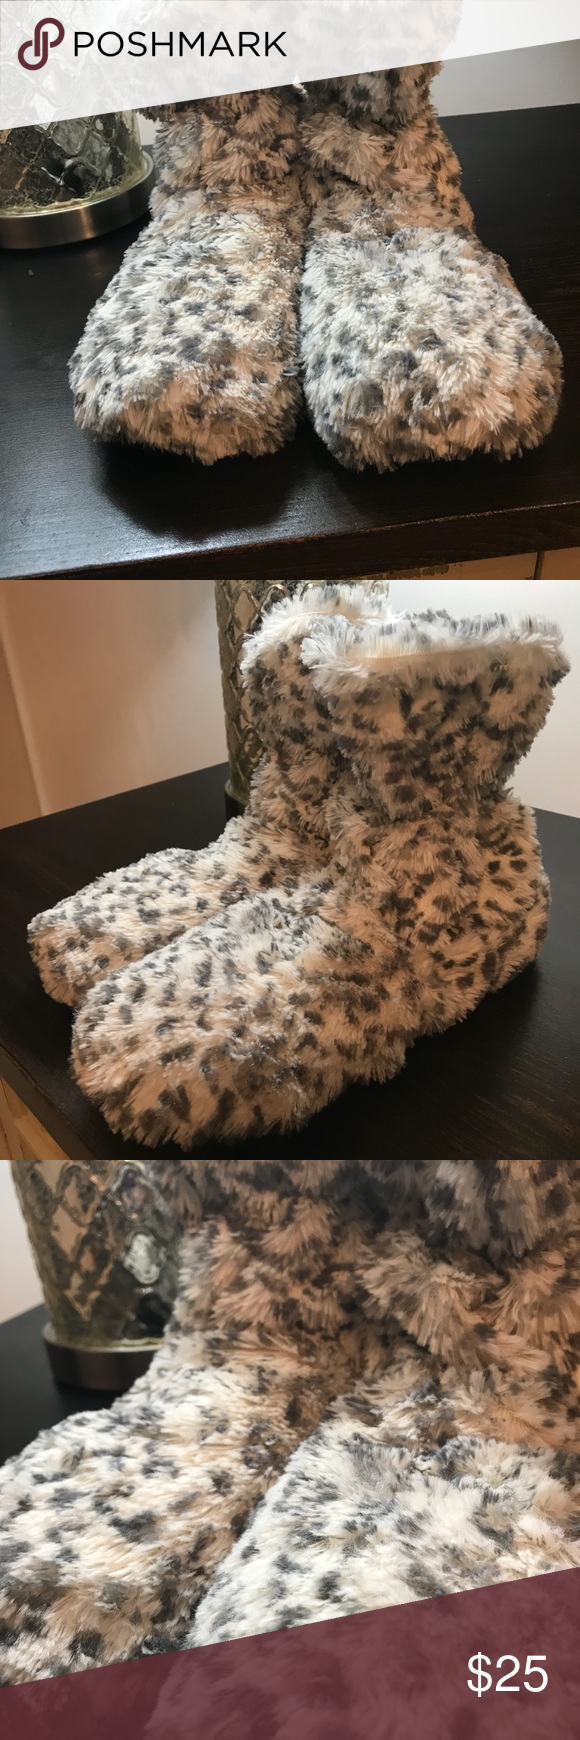 Intelex warmies cozy boots fully microwaveable cozy ankle intelex warmies cozy boots fully microwaveable solutioingenieria Images